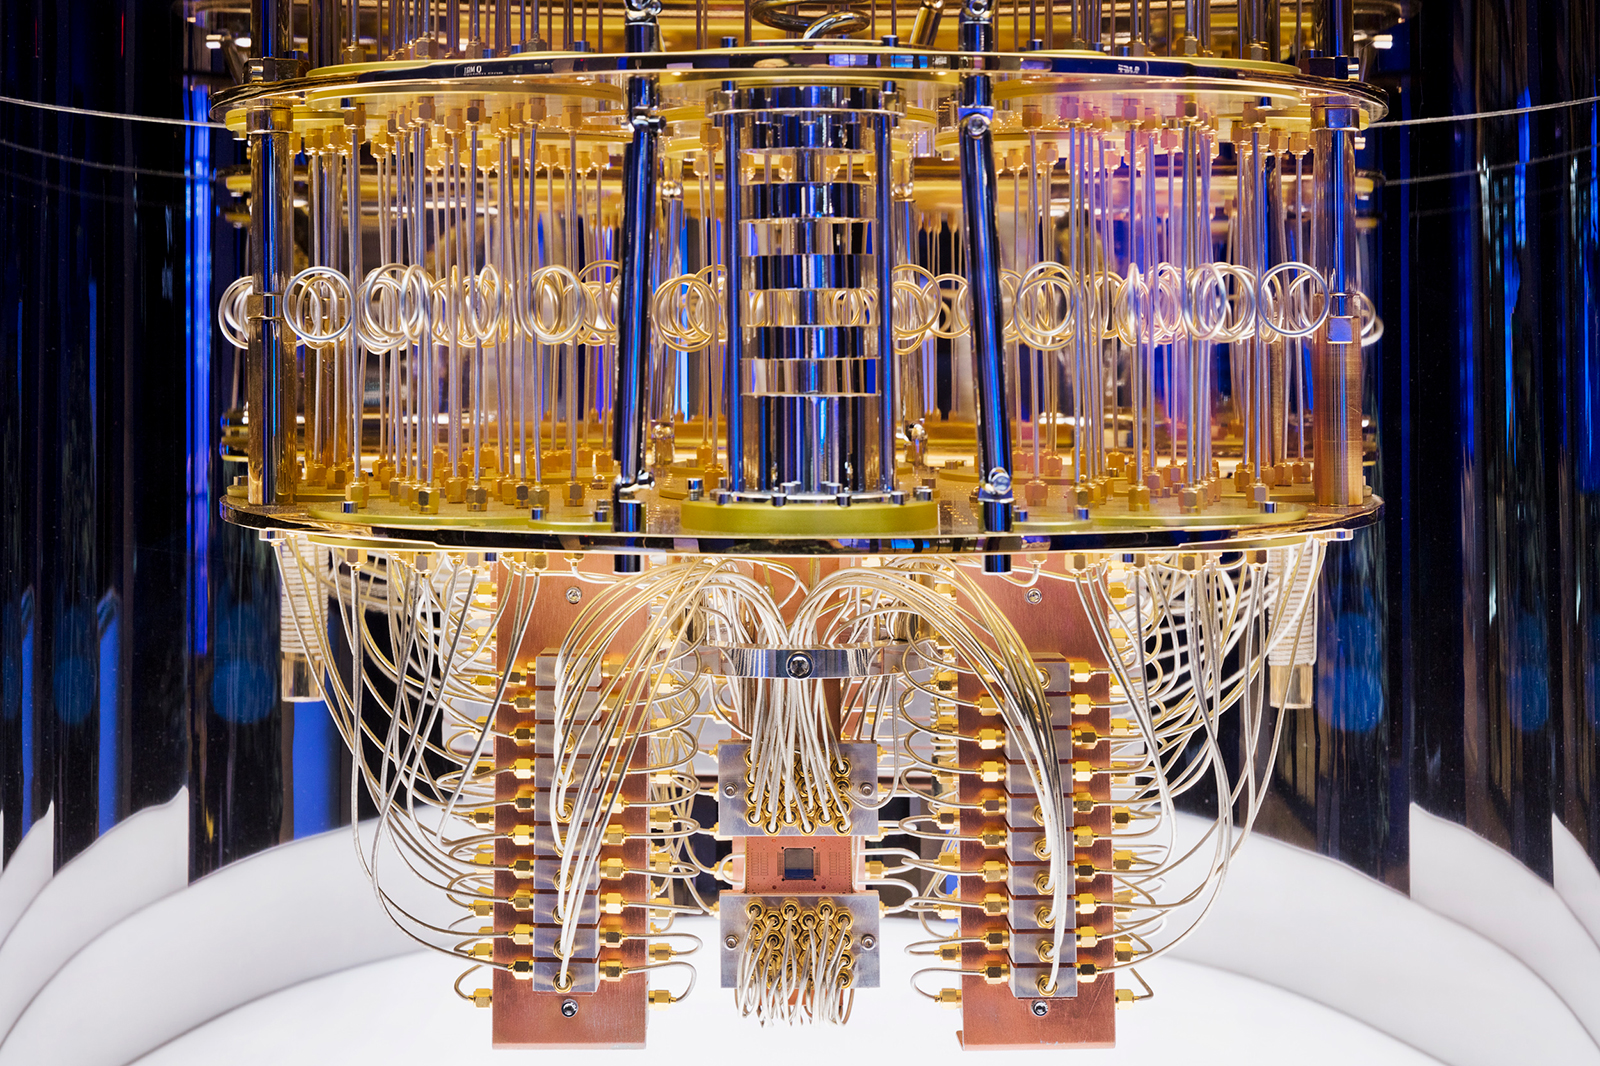 IBM quantum computers now finish some tasks in hours, not months | Engadget